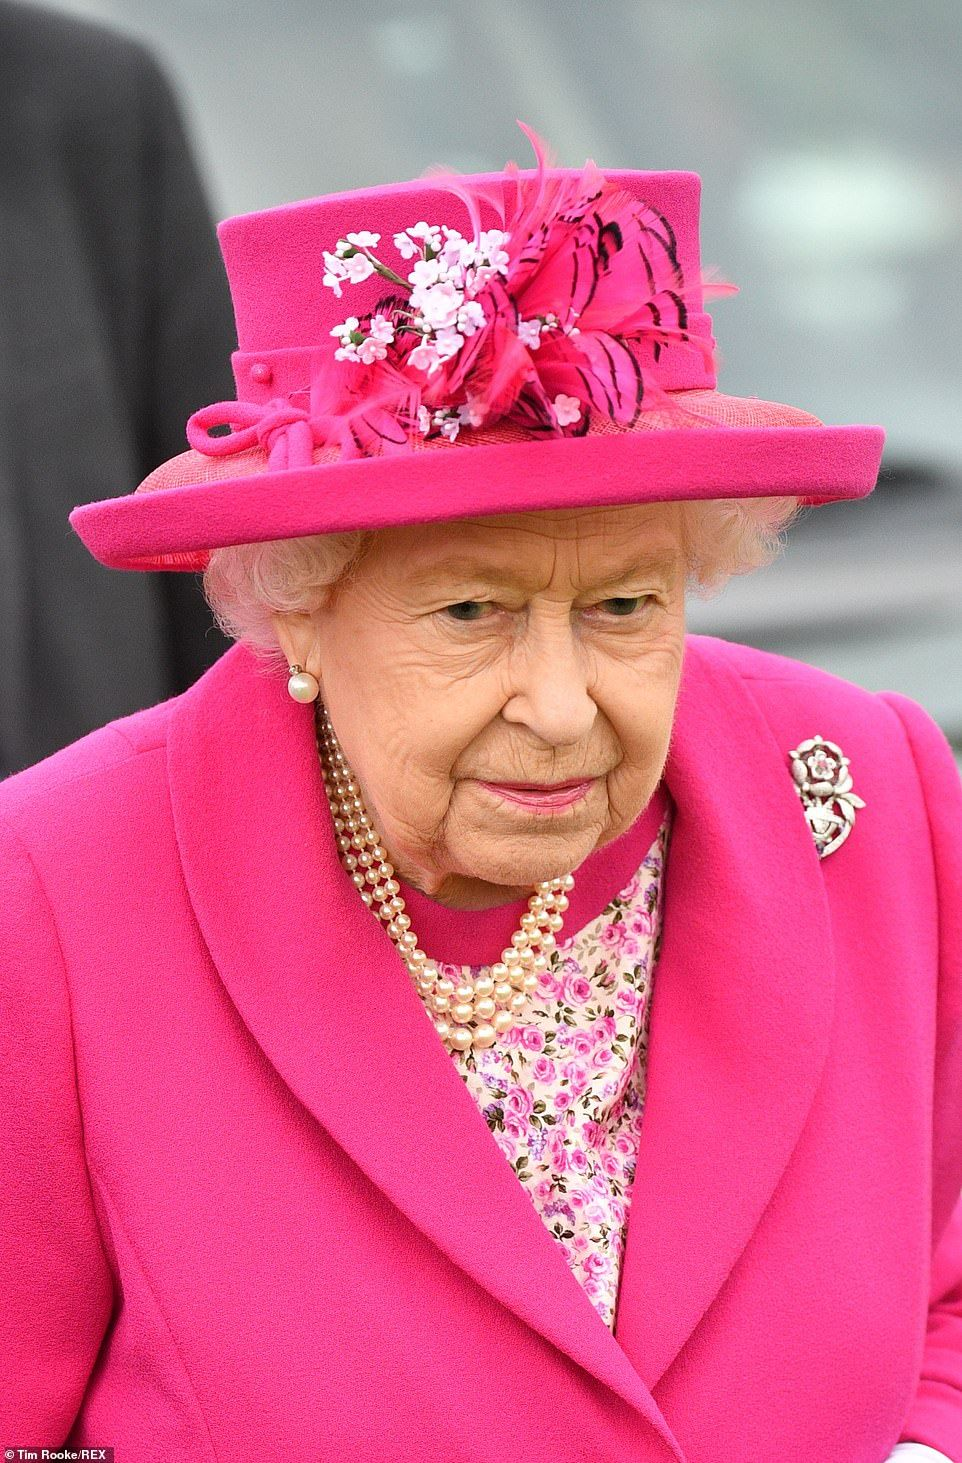 Shock As Polo Goer S Clothing Blows Into The Queen S Face At Royal Windsor Show Daily Mail Online Royal Queen Queen Elizabeth [ 1463 x 962 Pixel ]